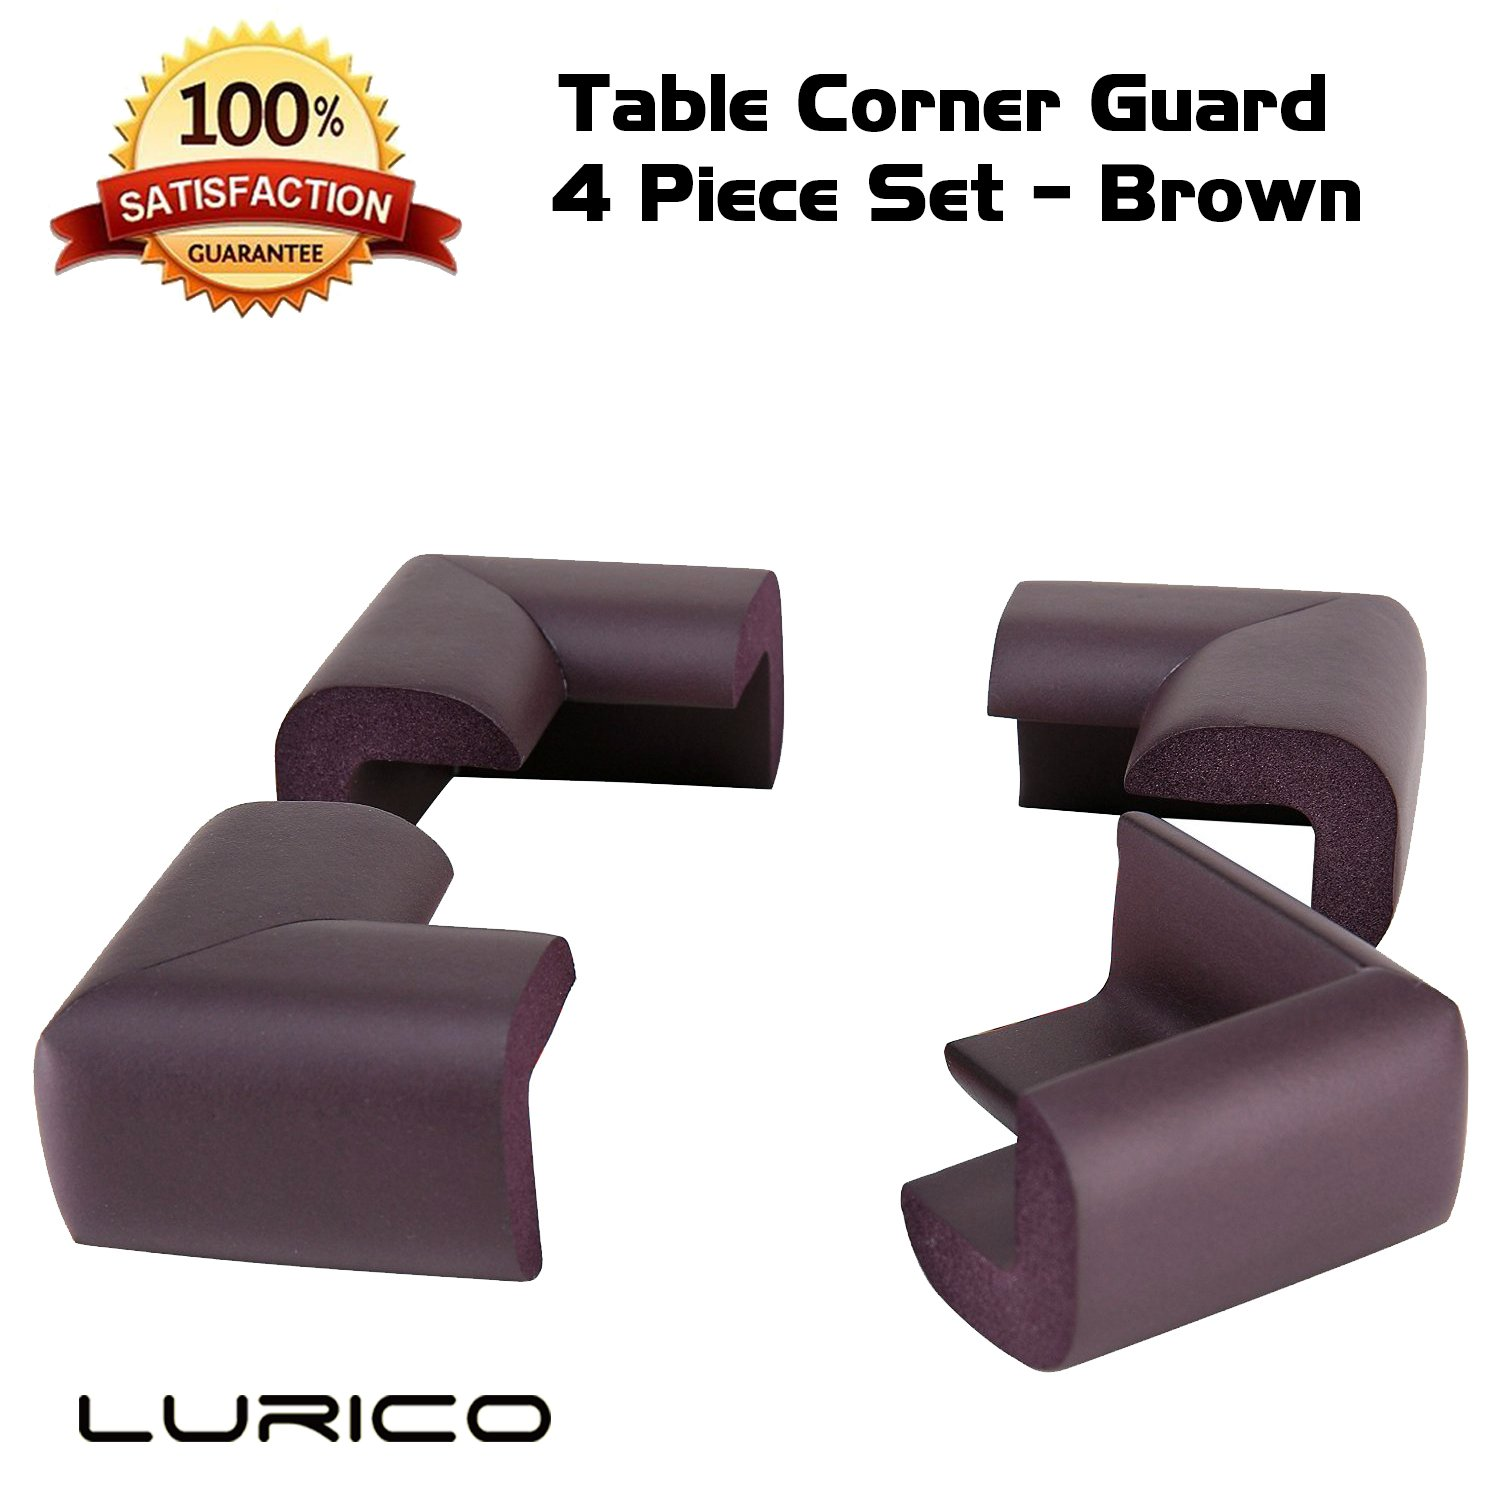 Lurico 4 Pieces Set Corner Guard Home Furniture Safety Bumper Foam Toddler Baby Proof Table